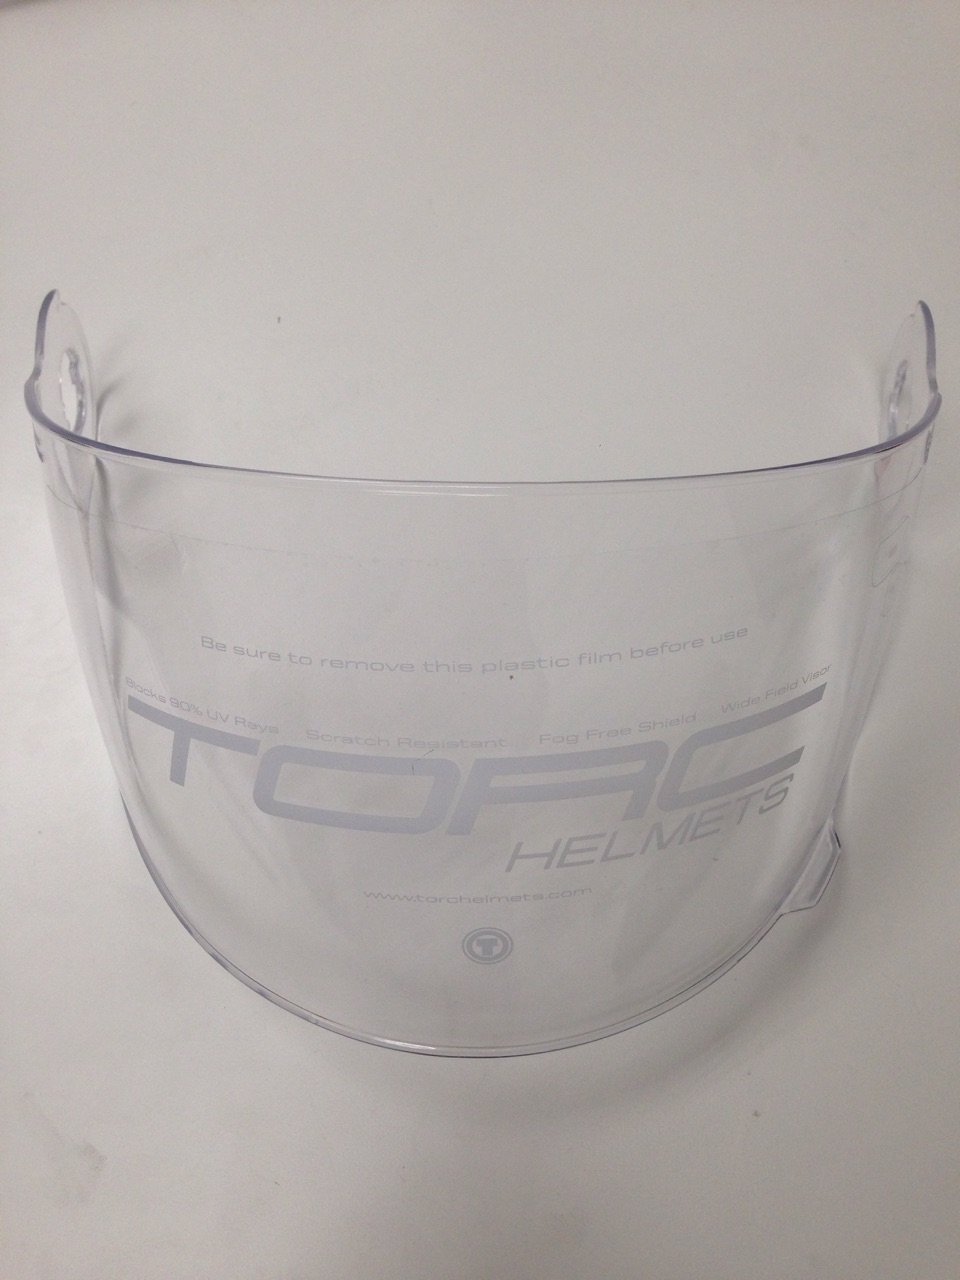 TORC-T1 Unisex-Adult's Helmet Shield (Clear, One Size)